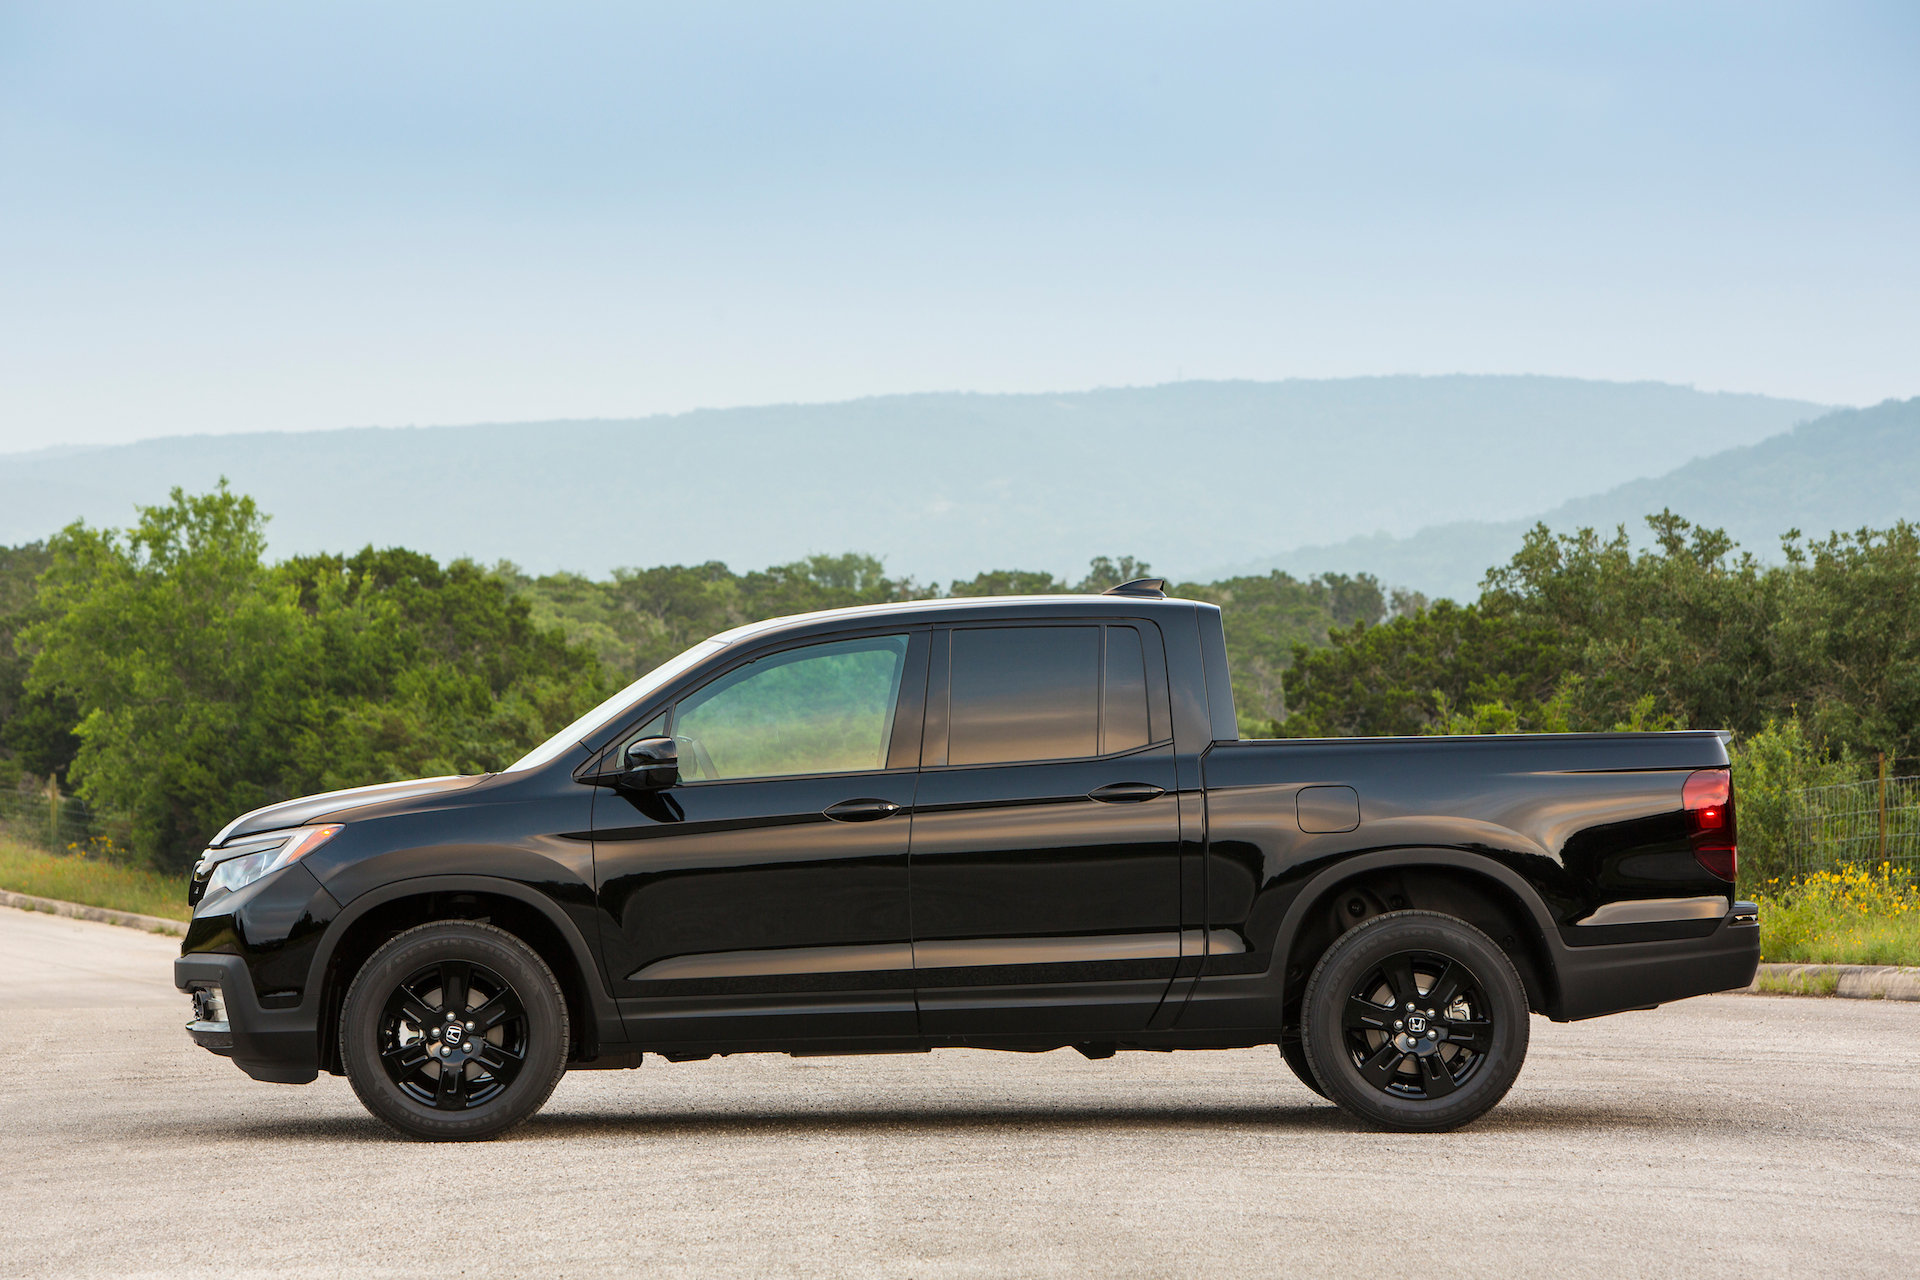 2017 Honda Ridgeline Review, Ratings, Specs, Prices, and Photos - The ...